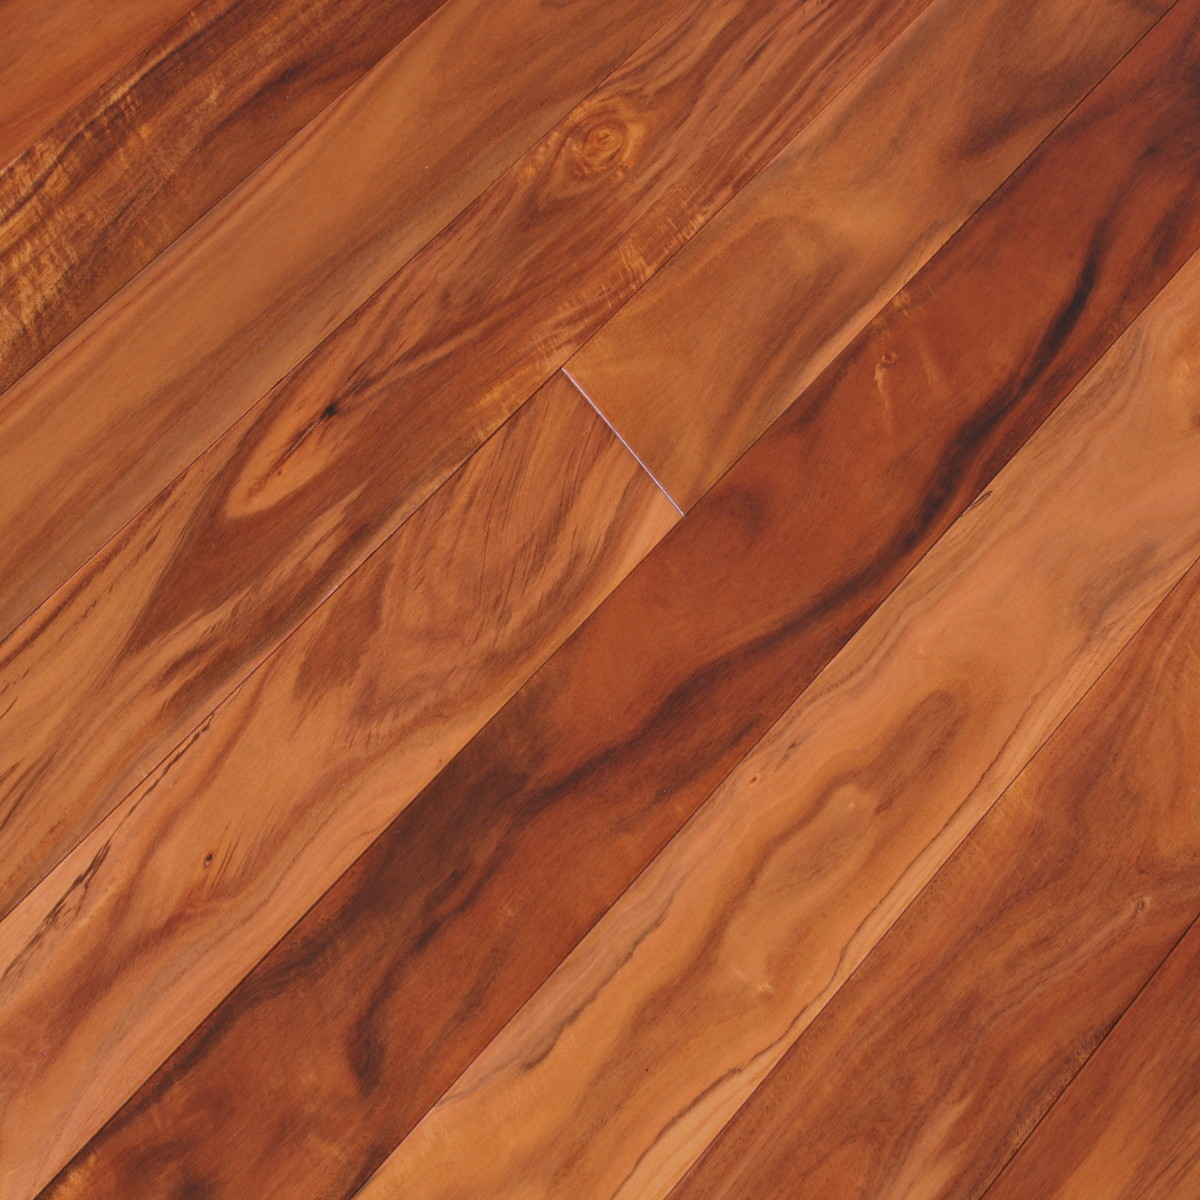 acacia golden sagebrush plank hardwood flooring. Black Bedroom Furniture Sets. Home Design Ideas